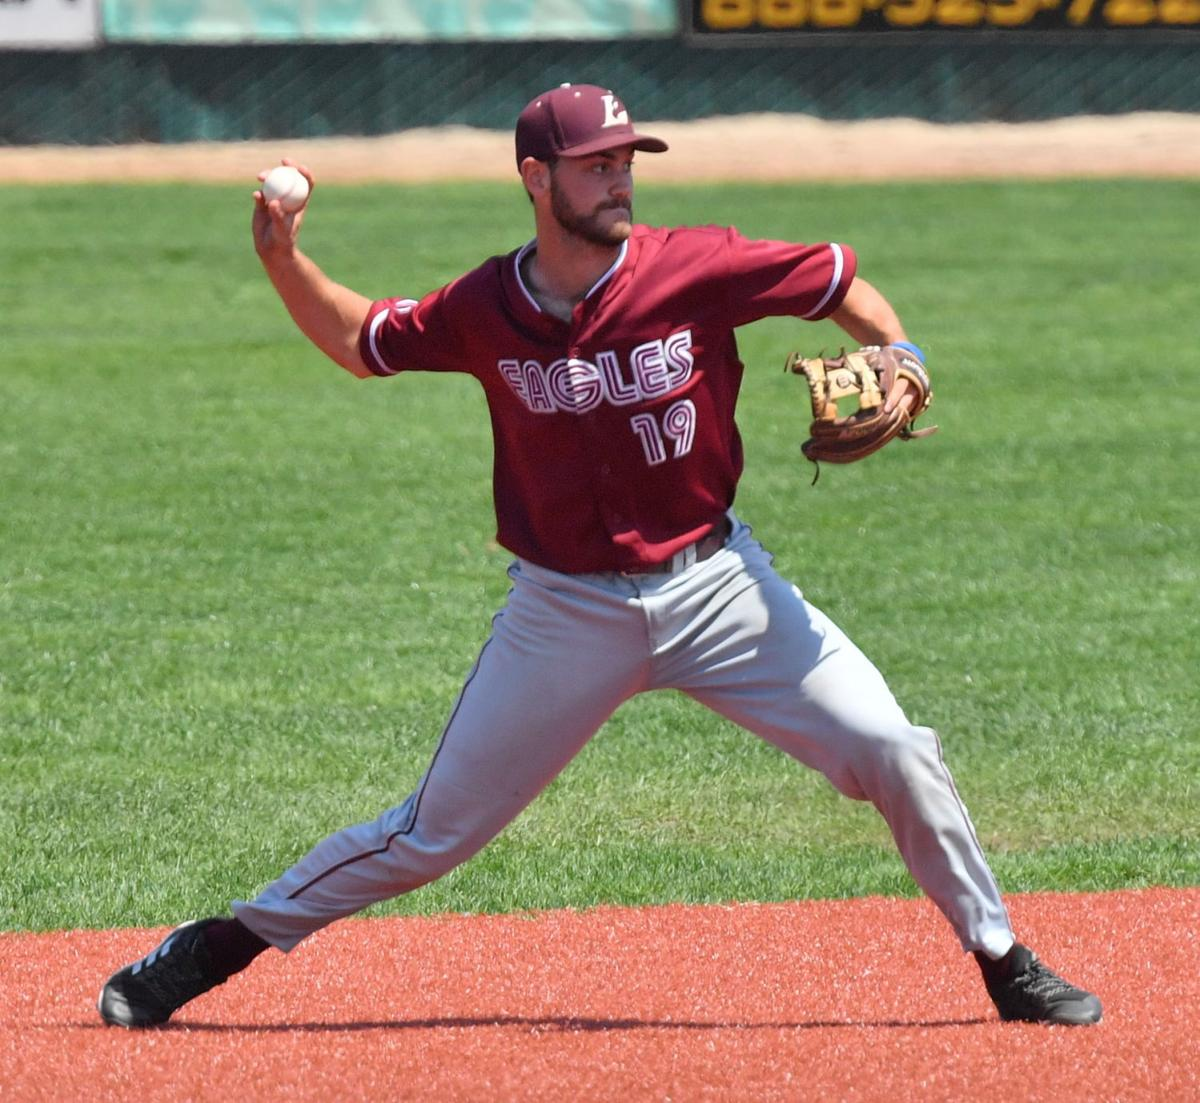 uwlbaseball-cover-photo